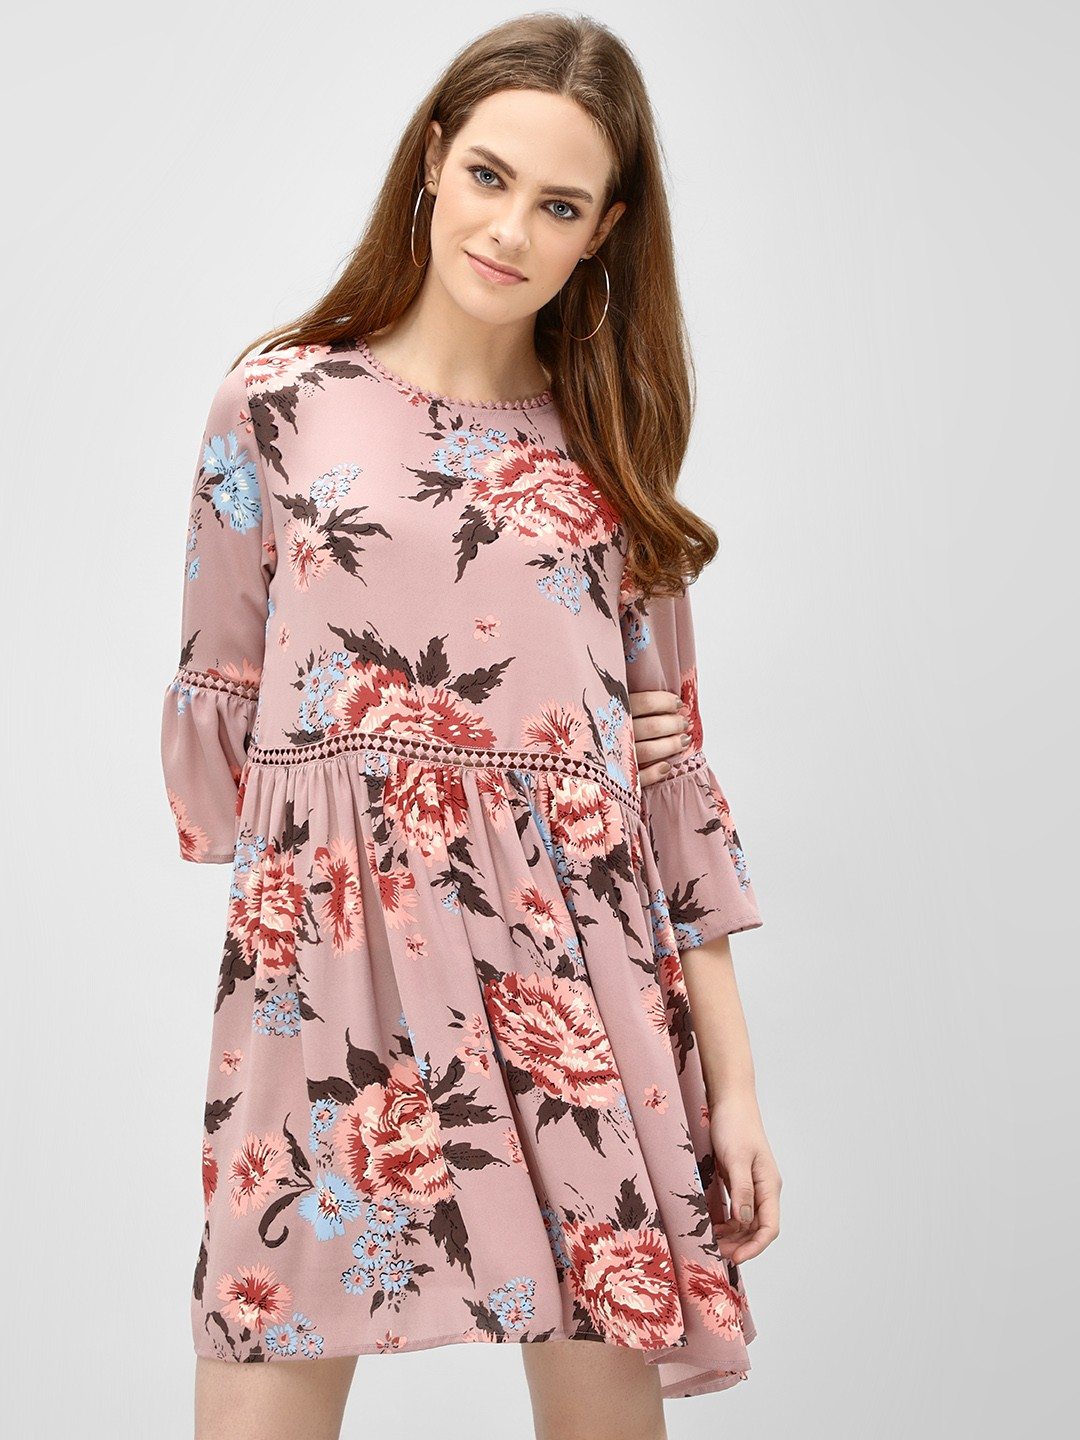 KOOVS Pink Floral Print Shift Dress 1